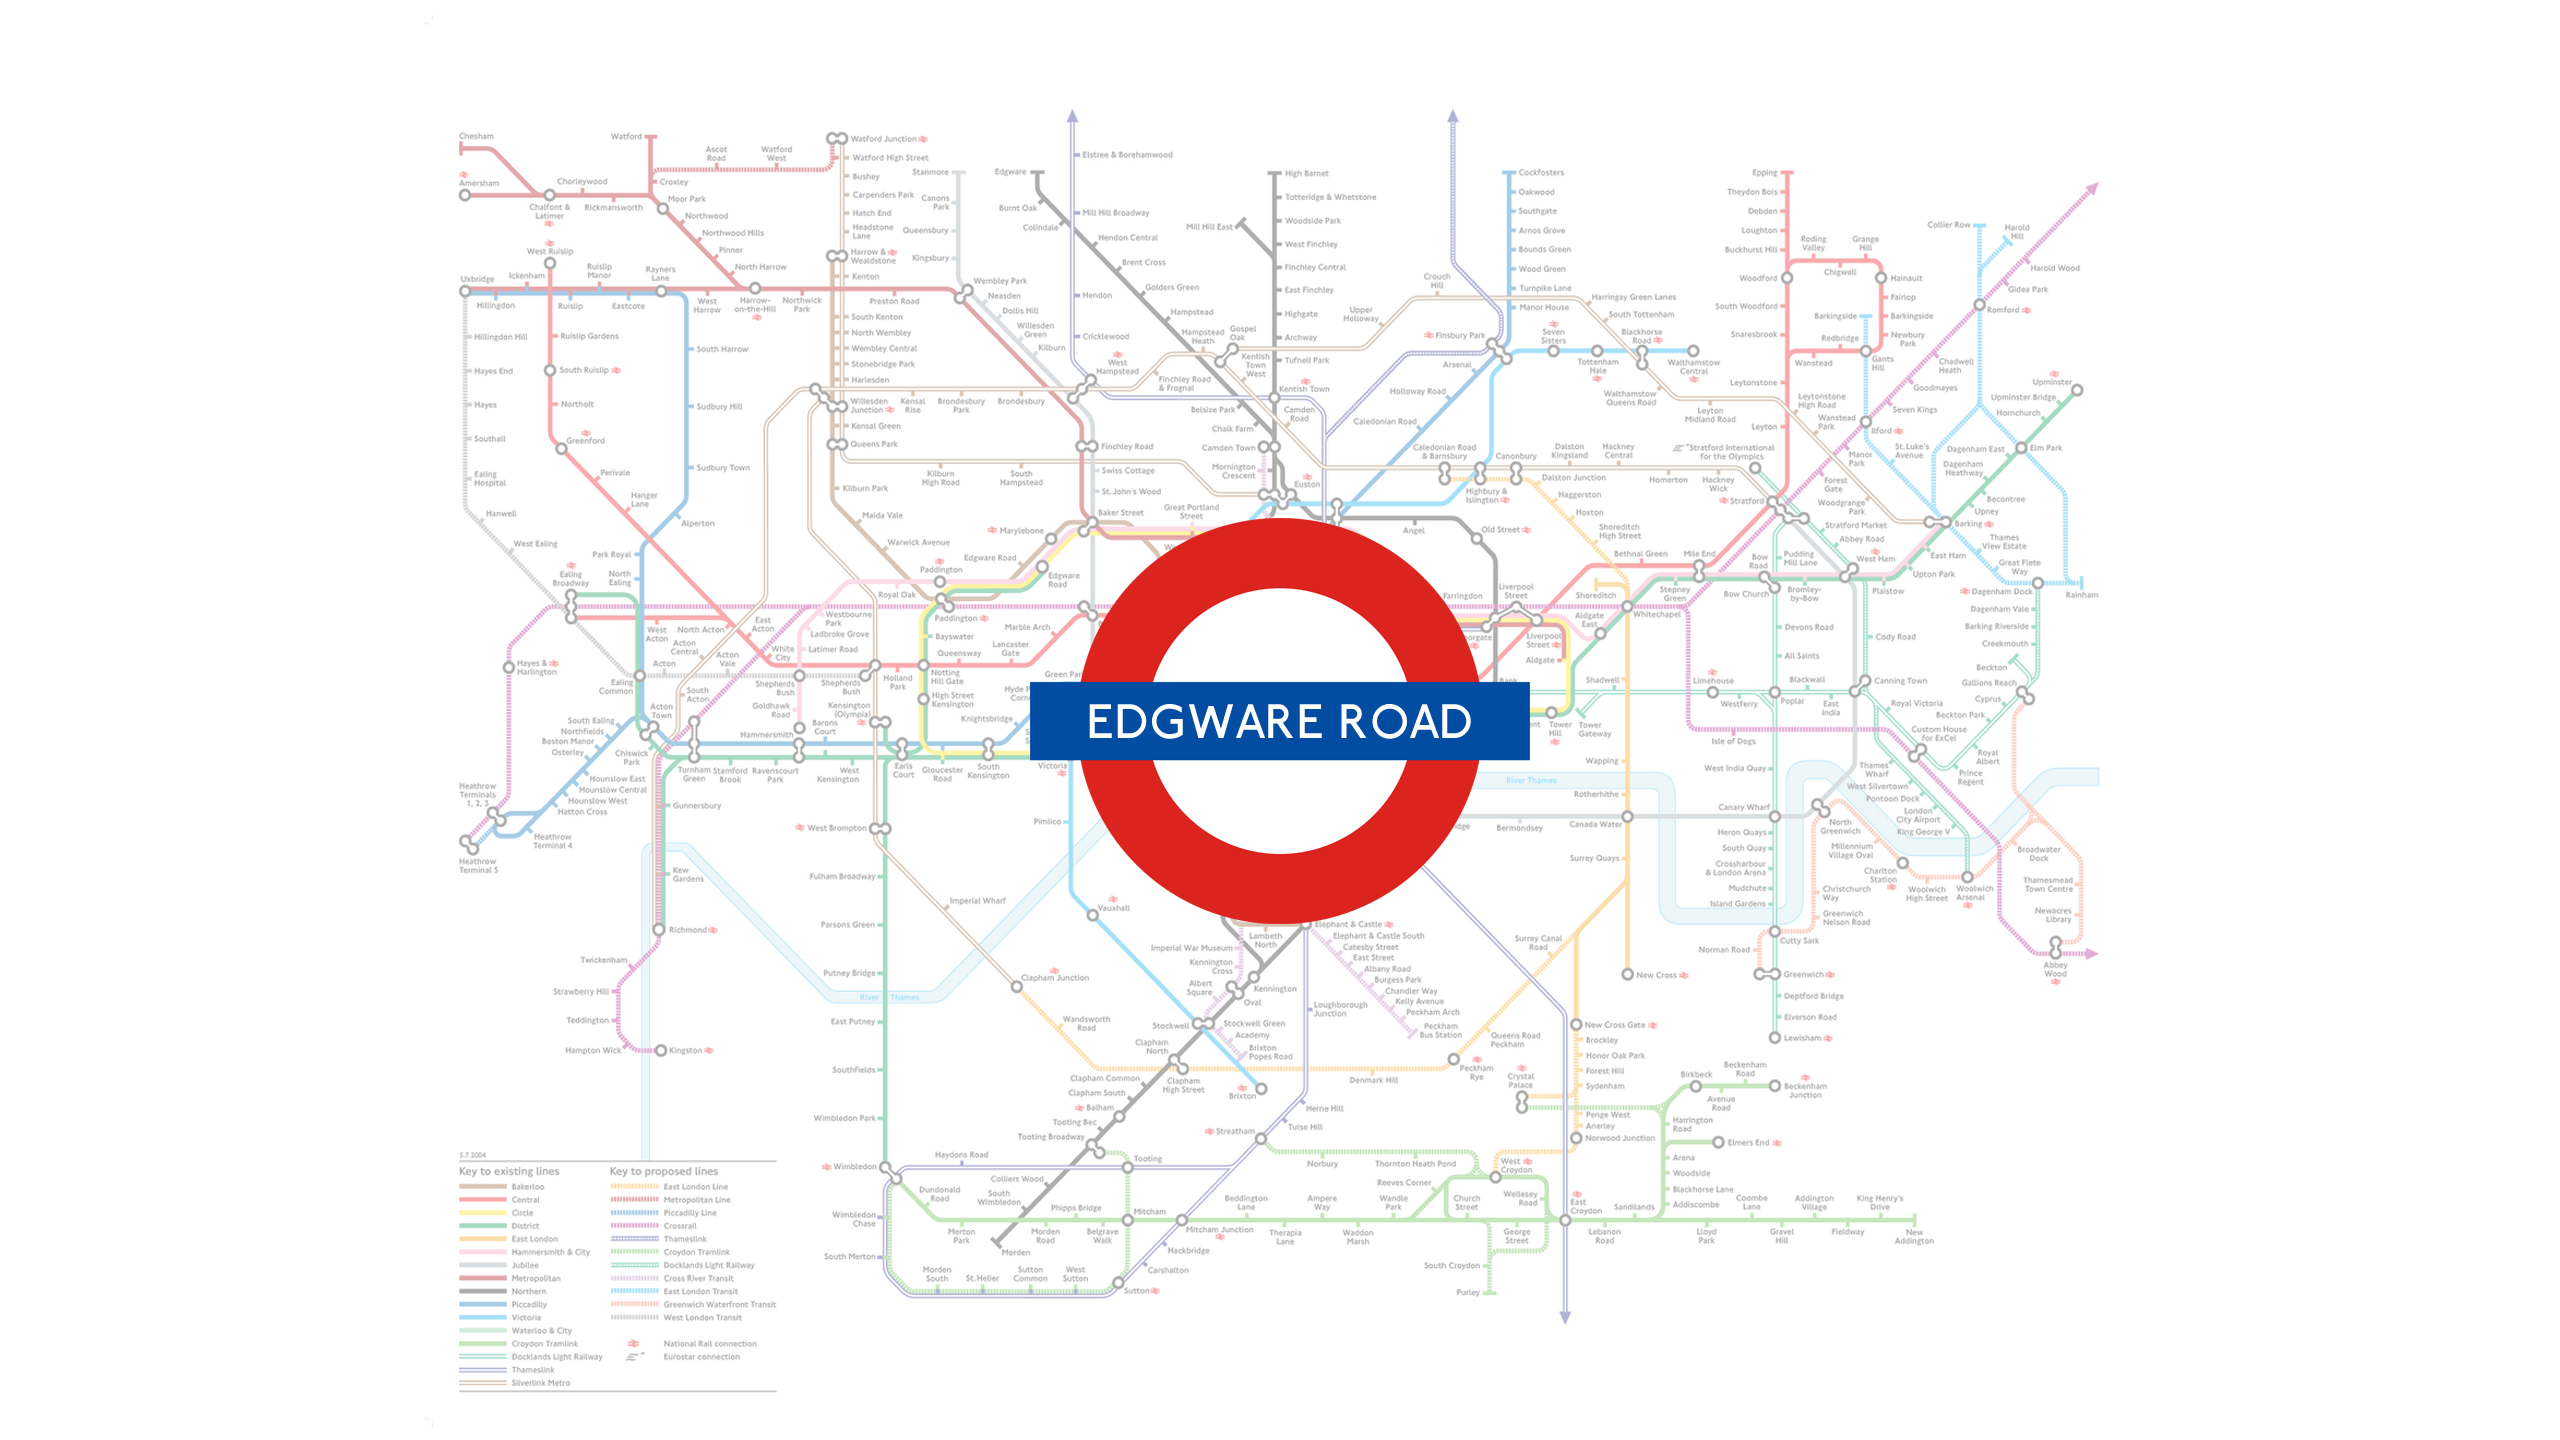 Edgware Road (Map)